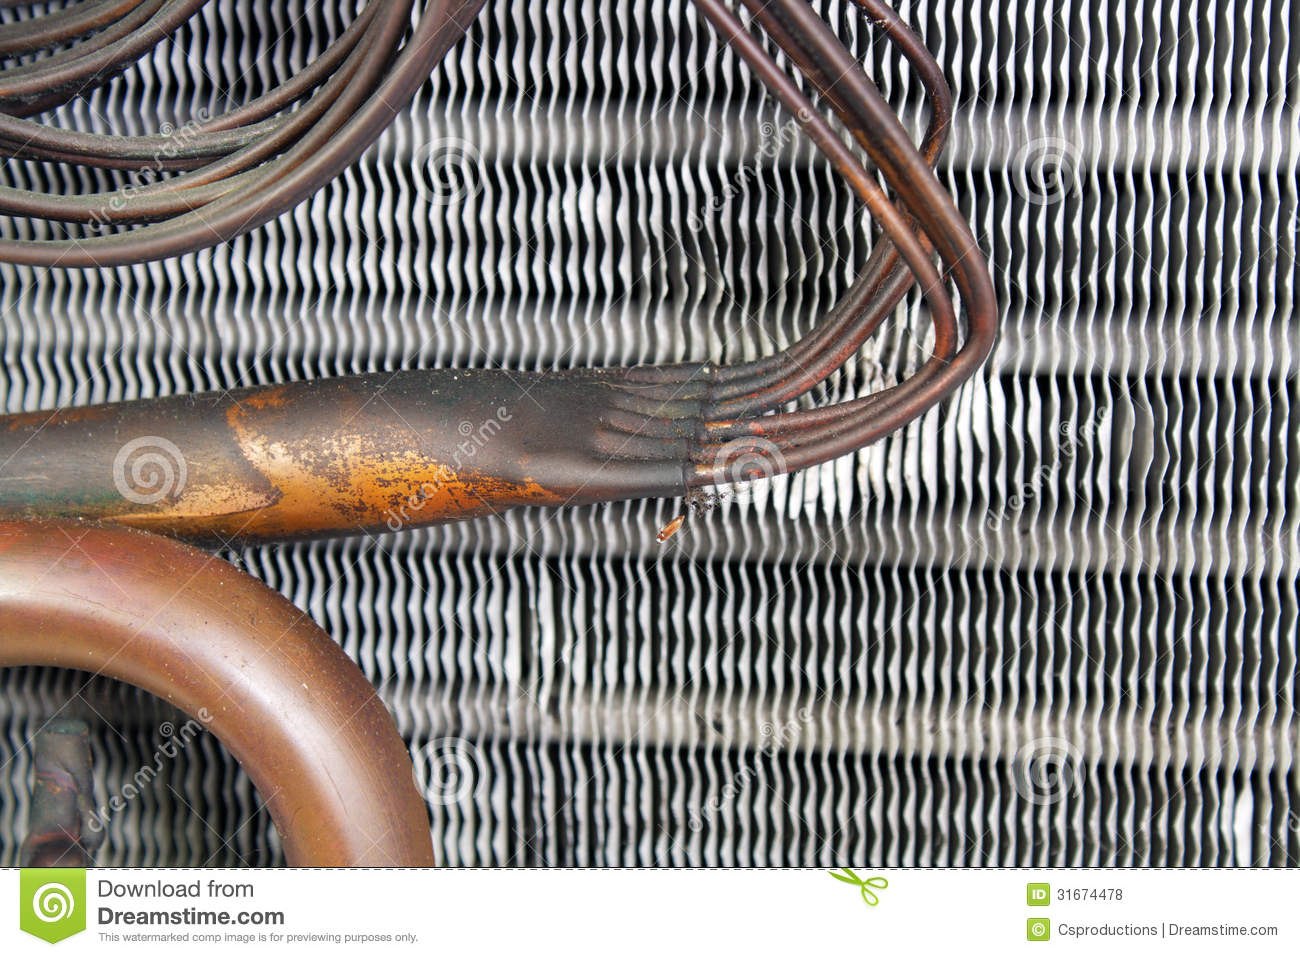 3 Ton Air Conditioner >> Old Evaporator Coil (13) stock photo. Image of tubes - 31674478